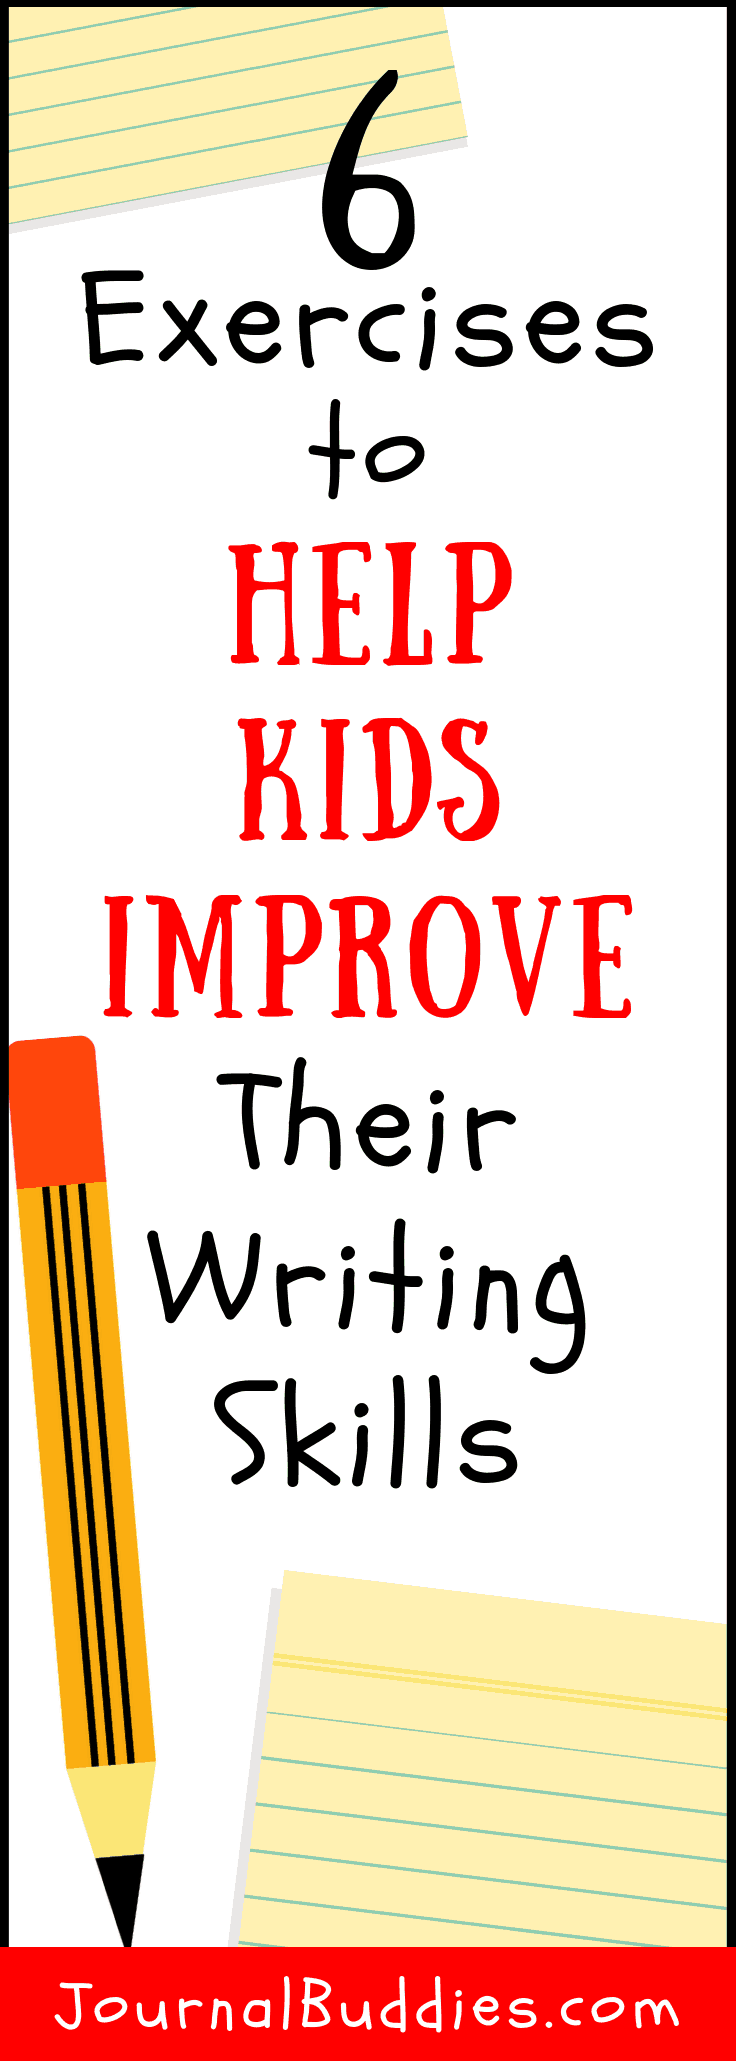 Check out these six writing improvement exercises and ideas you can share with your child to get them on their way to improved writing skills. Enjoy!